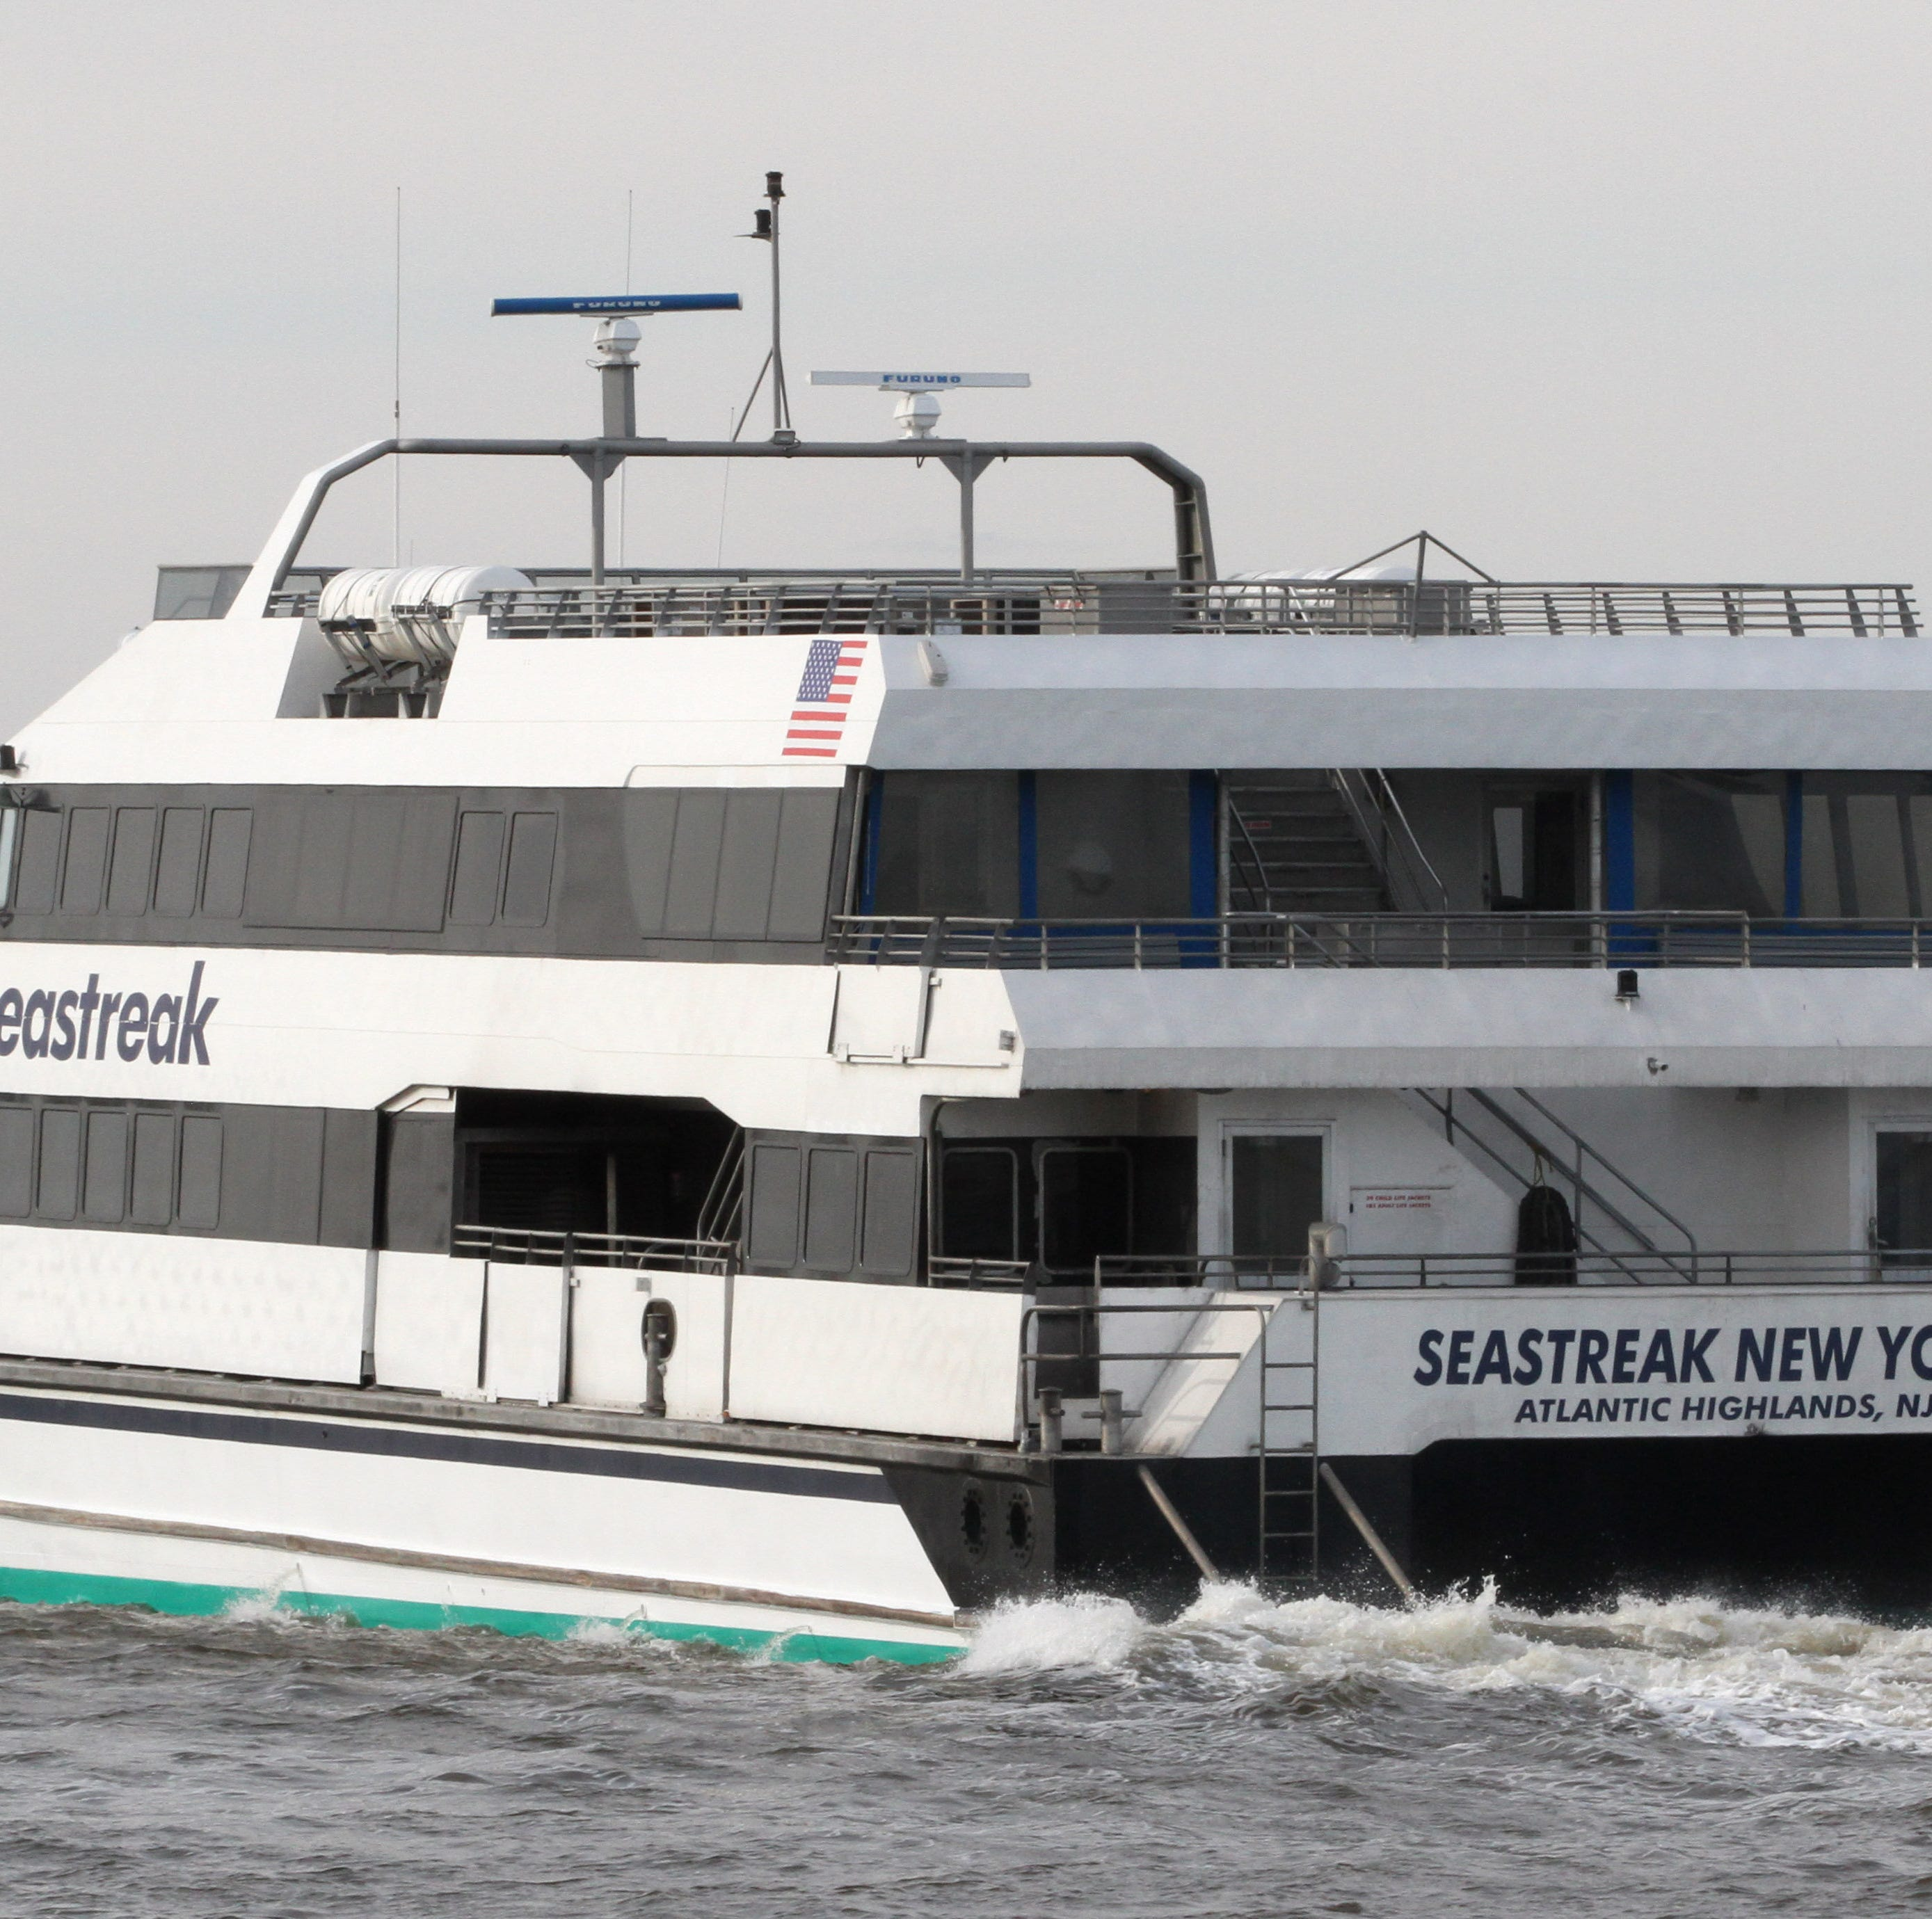 SeaStreak ferry changes course for mayday call; crew saves 4 boaters